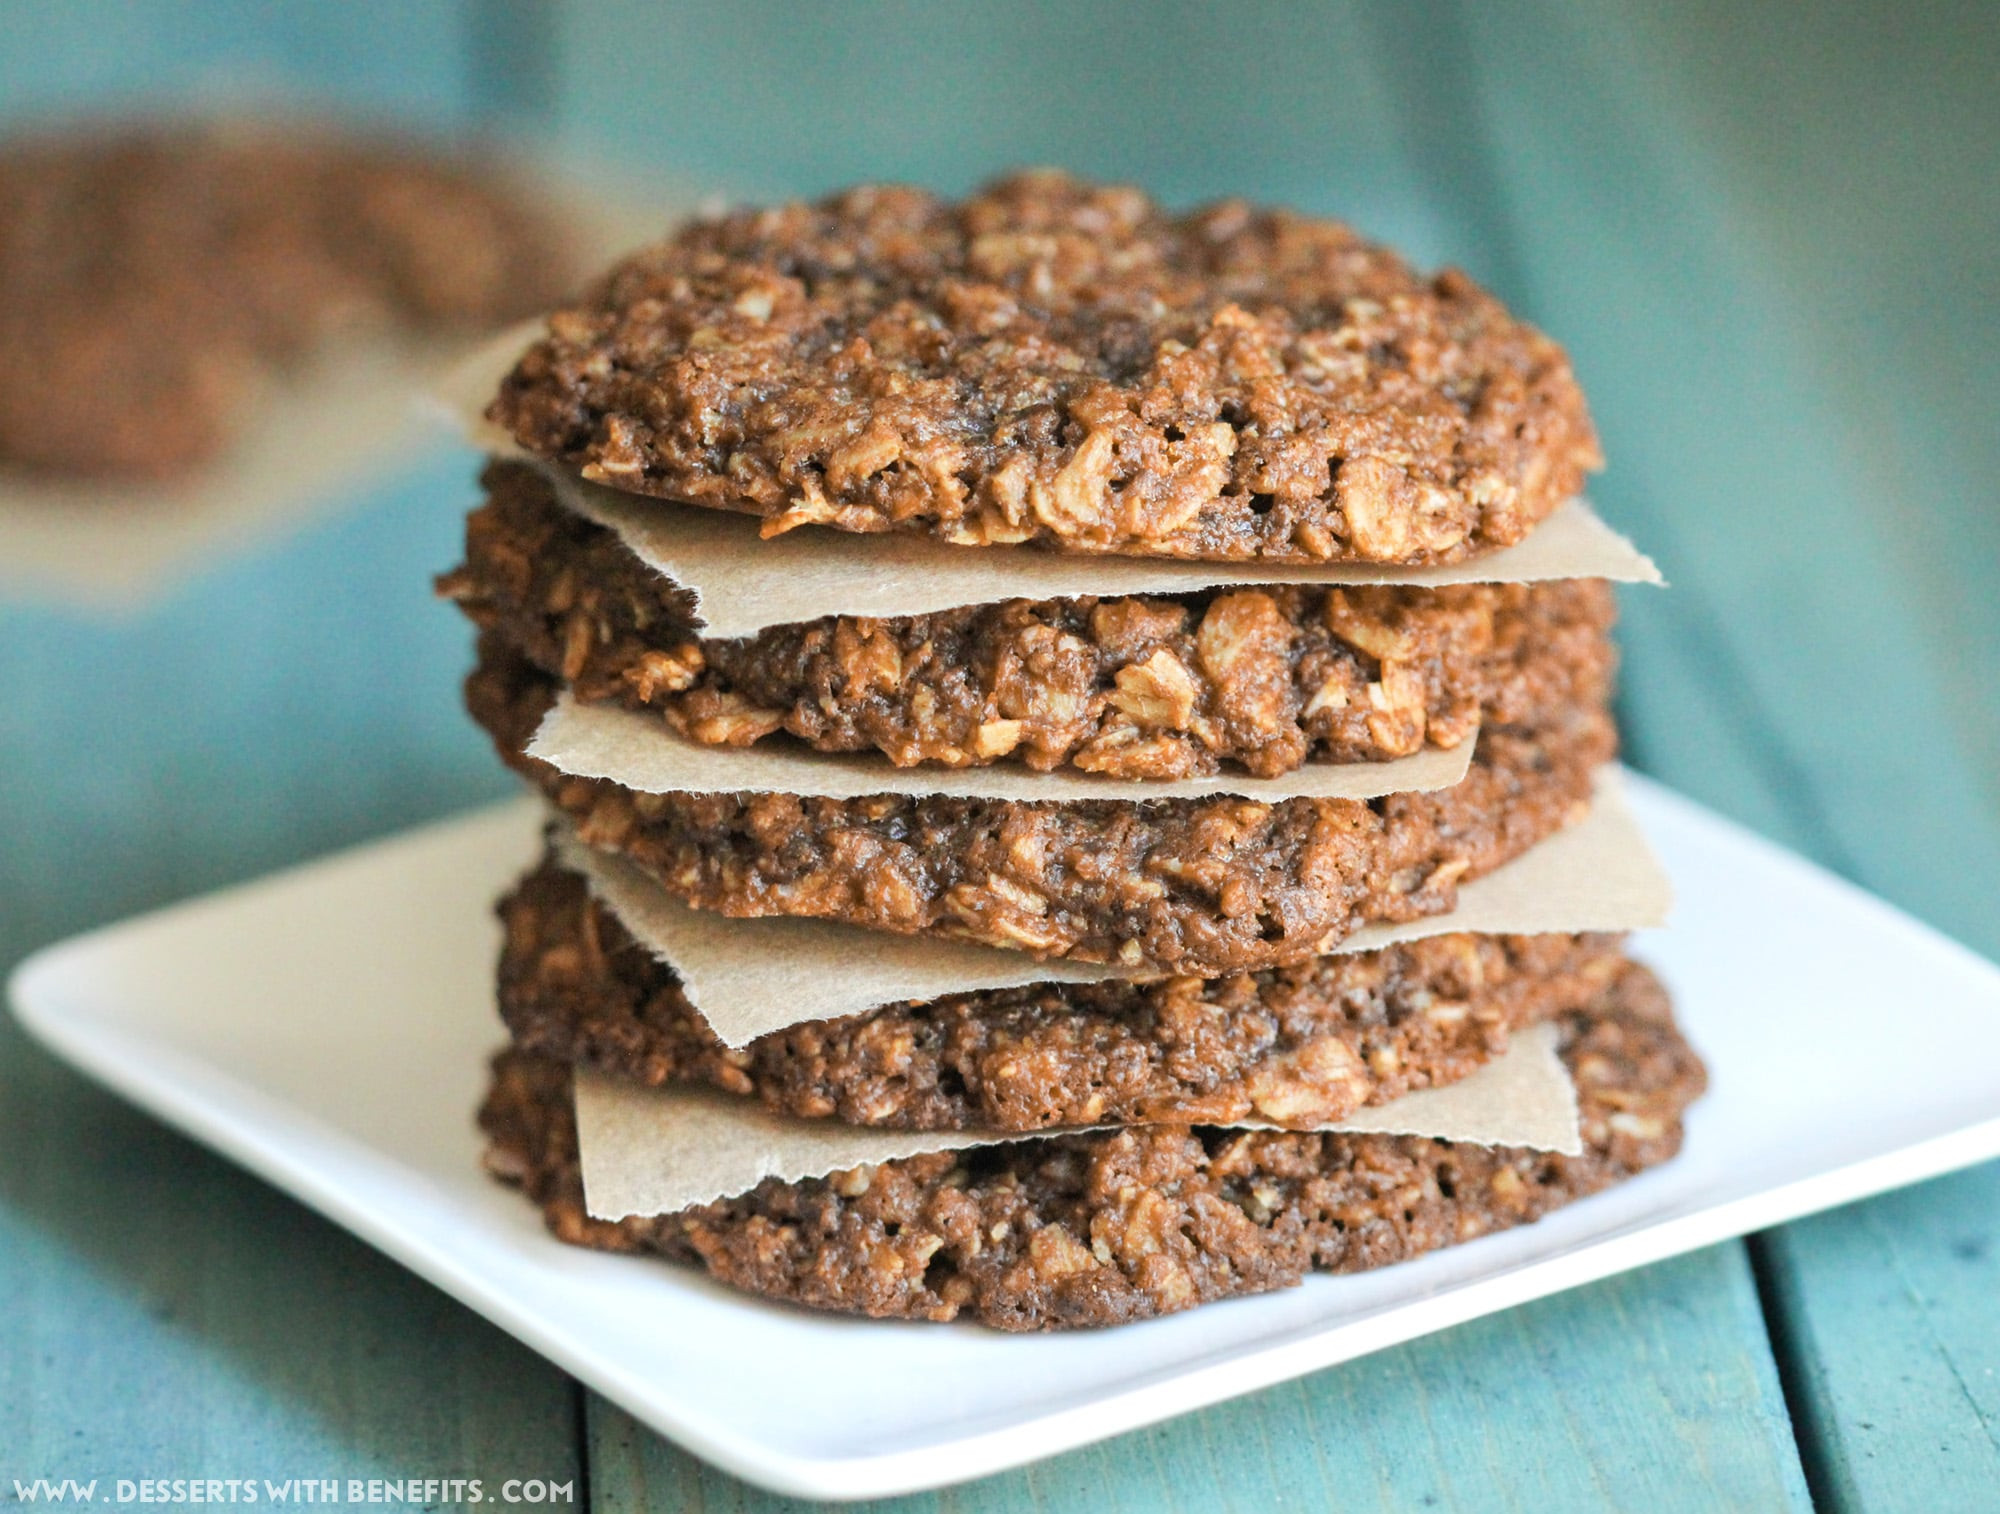 Peanut Butter Oatmeal Cookies Healthy  Healthy Chewy Peanut Butter Oatmeal Cookies recipe gluten